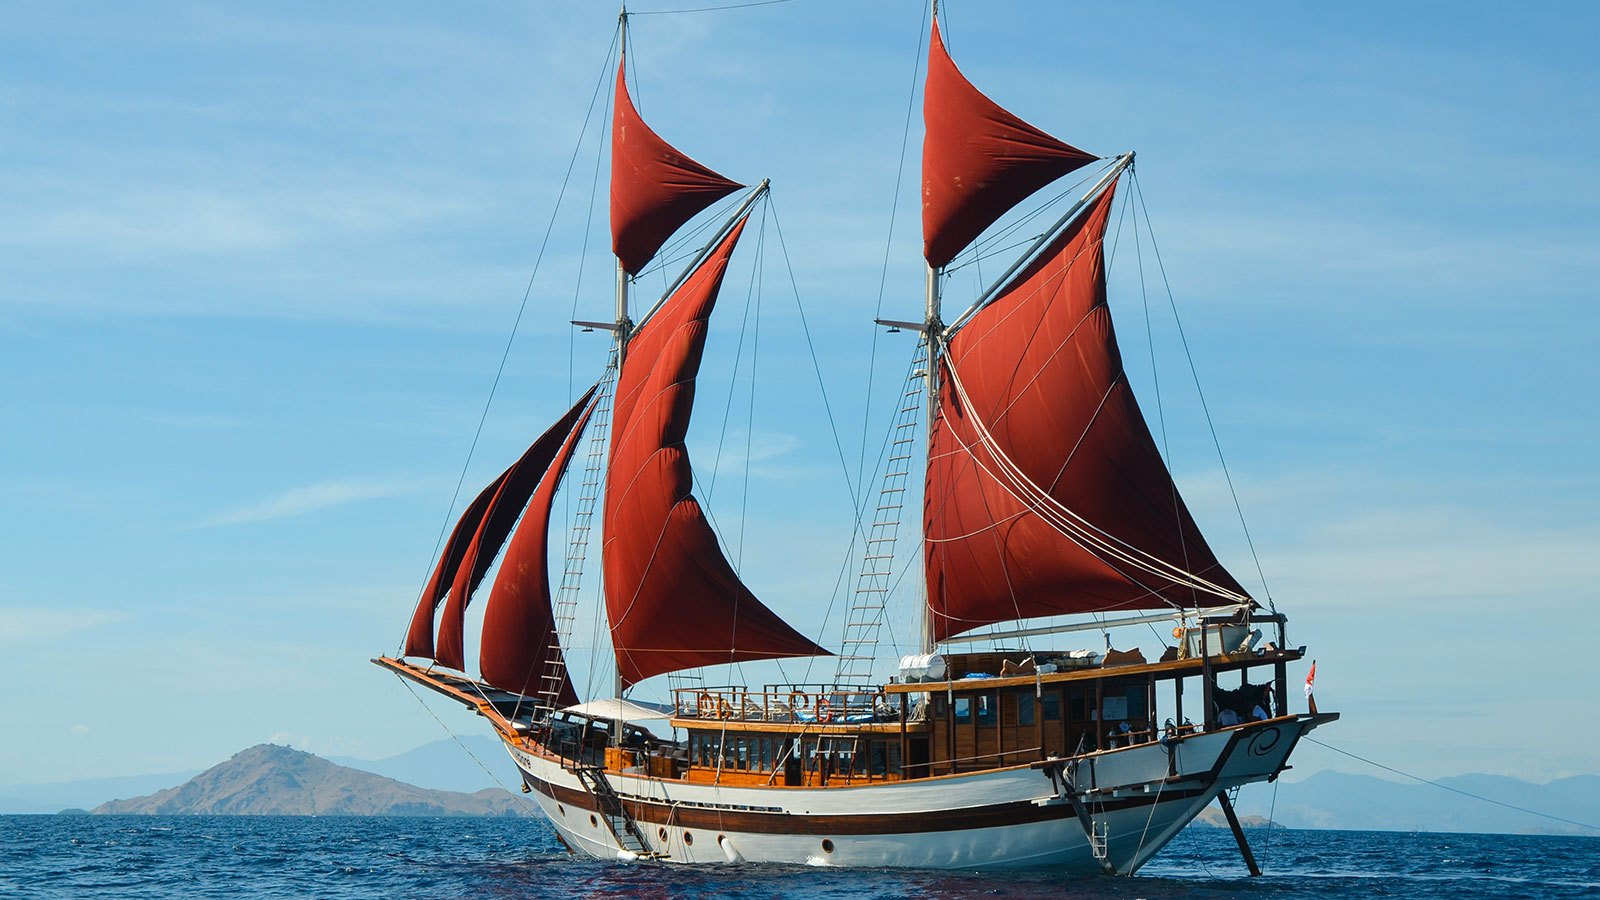 The Tiarè Liveaboard